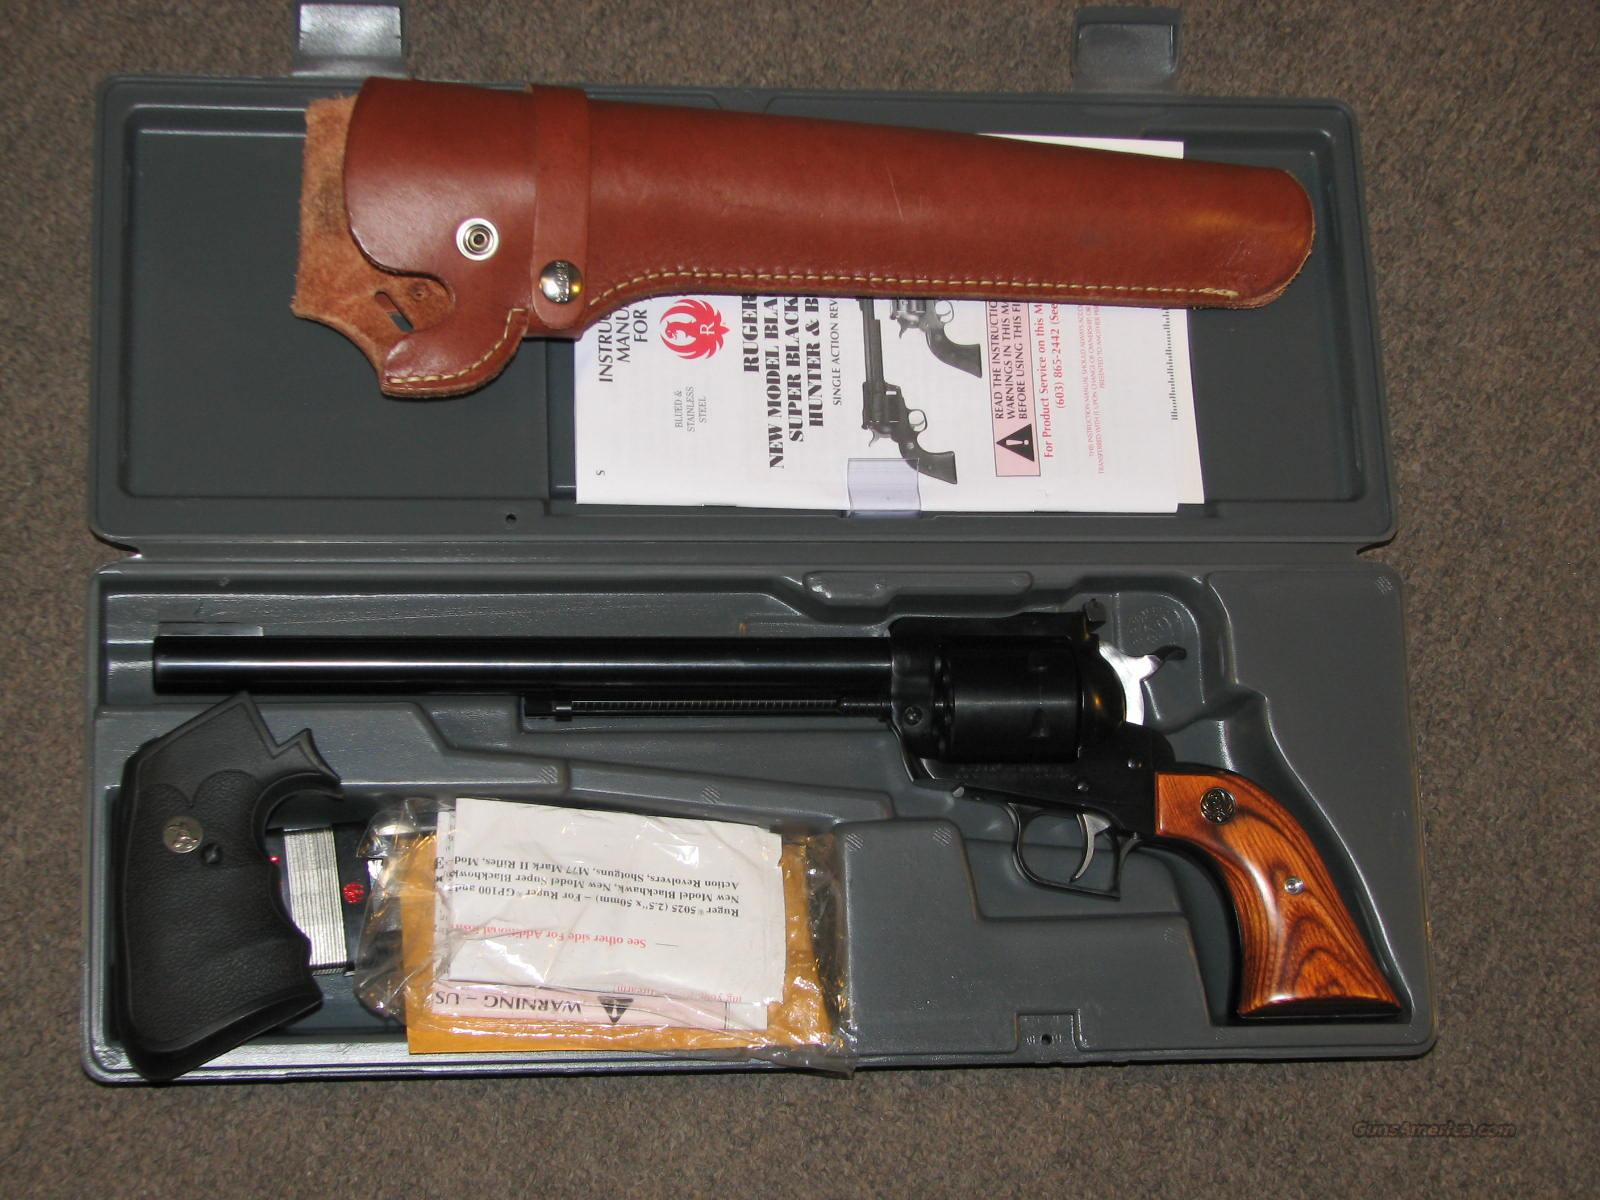 "RUGER SUPER BLACKHAWK .44 MAG 10.5"" - w/ BOX AND HOLSTER  Guns > Pistols > Ruger Single Action Revolvers > Blackhawk Type"